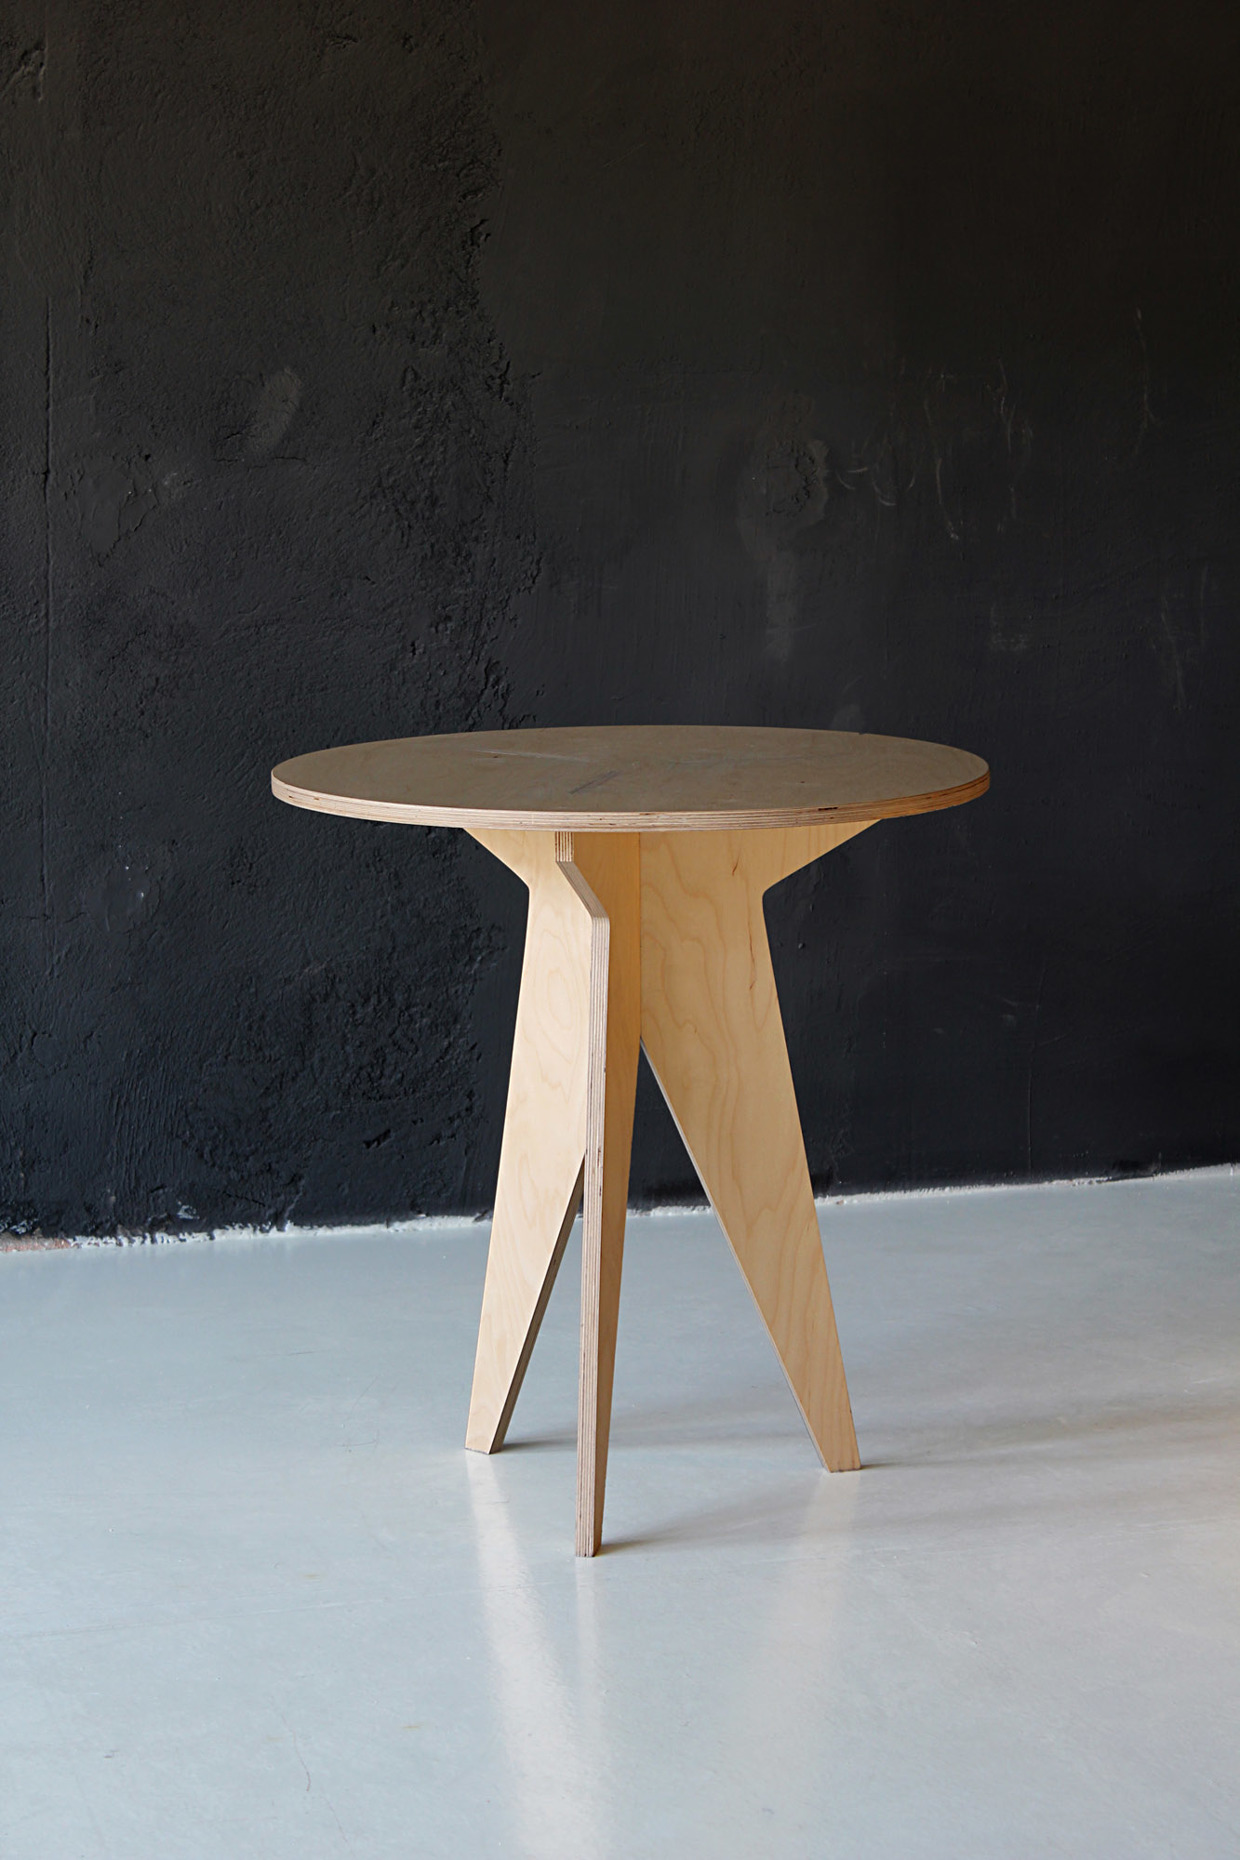 Furniture_P01_Plywood-dontDIY-11